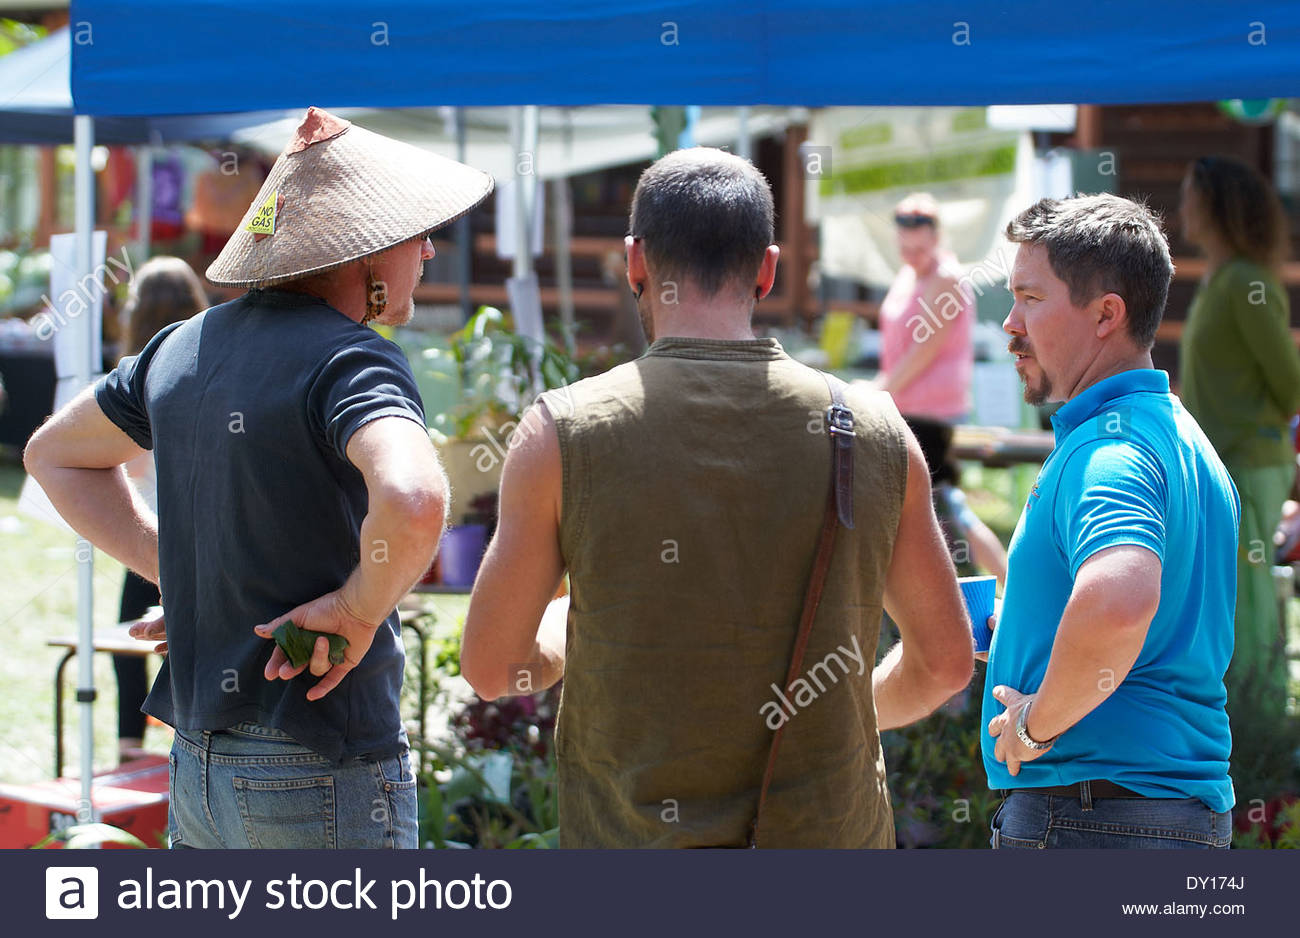 Three Caucasian men wearing casual clothes, standing together having a discussion at a primary school community day, in support of the environment. - Stock Image